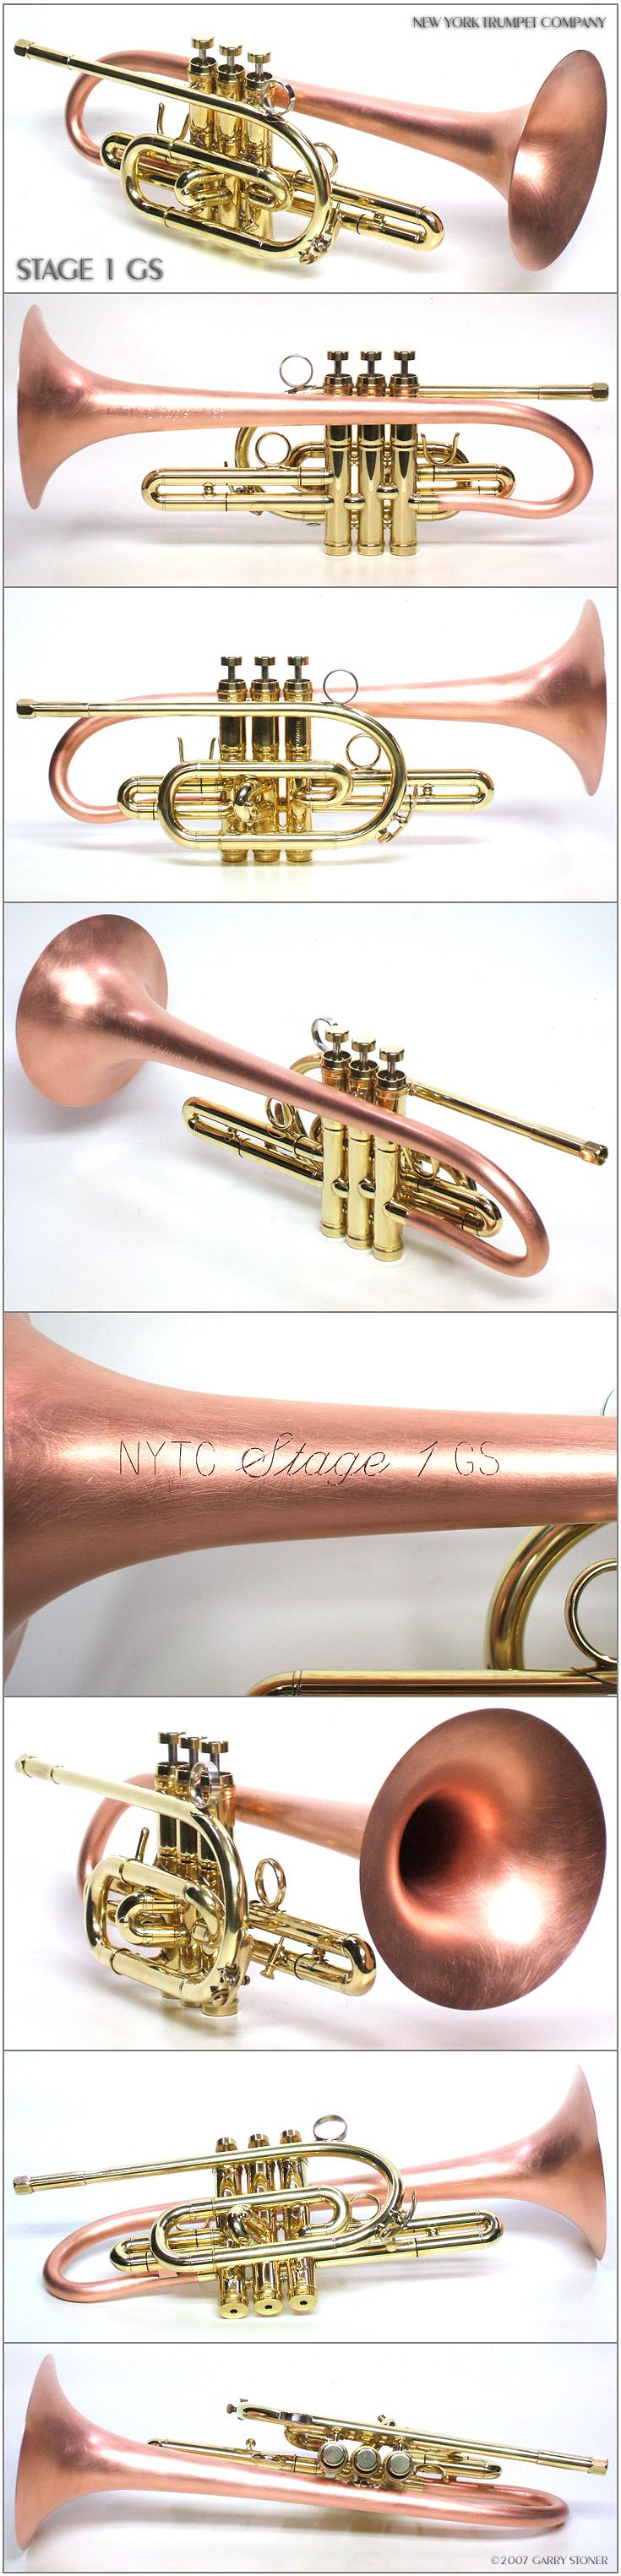 110 best trumpet u0026 anything pertaining to trumpets images on